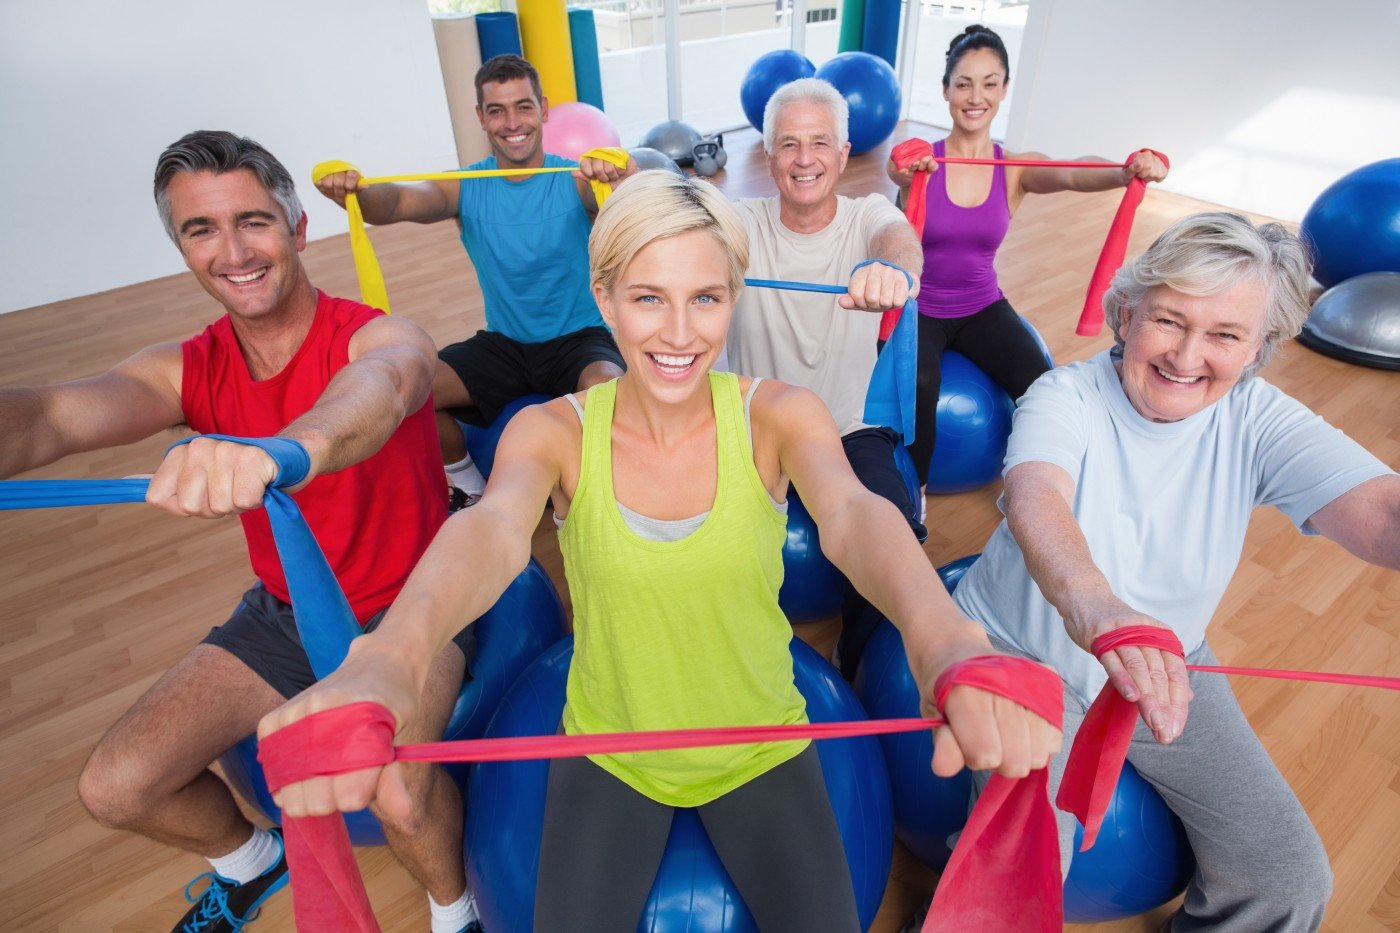 Researchers Report Significant Benefits of Exercise Training in Pulmonary Hypertension Patients